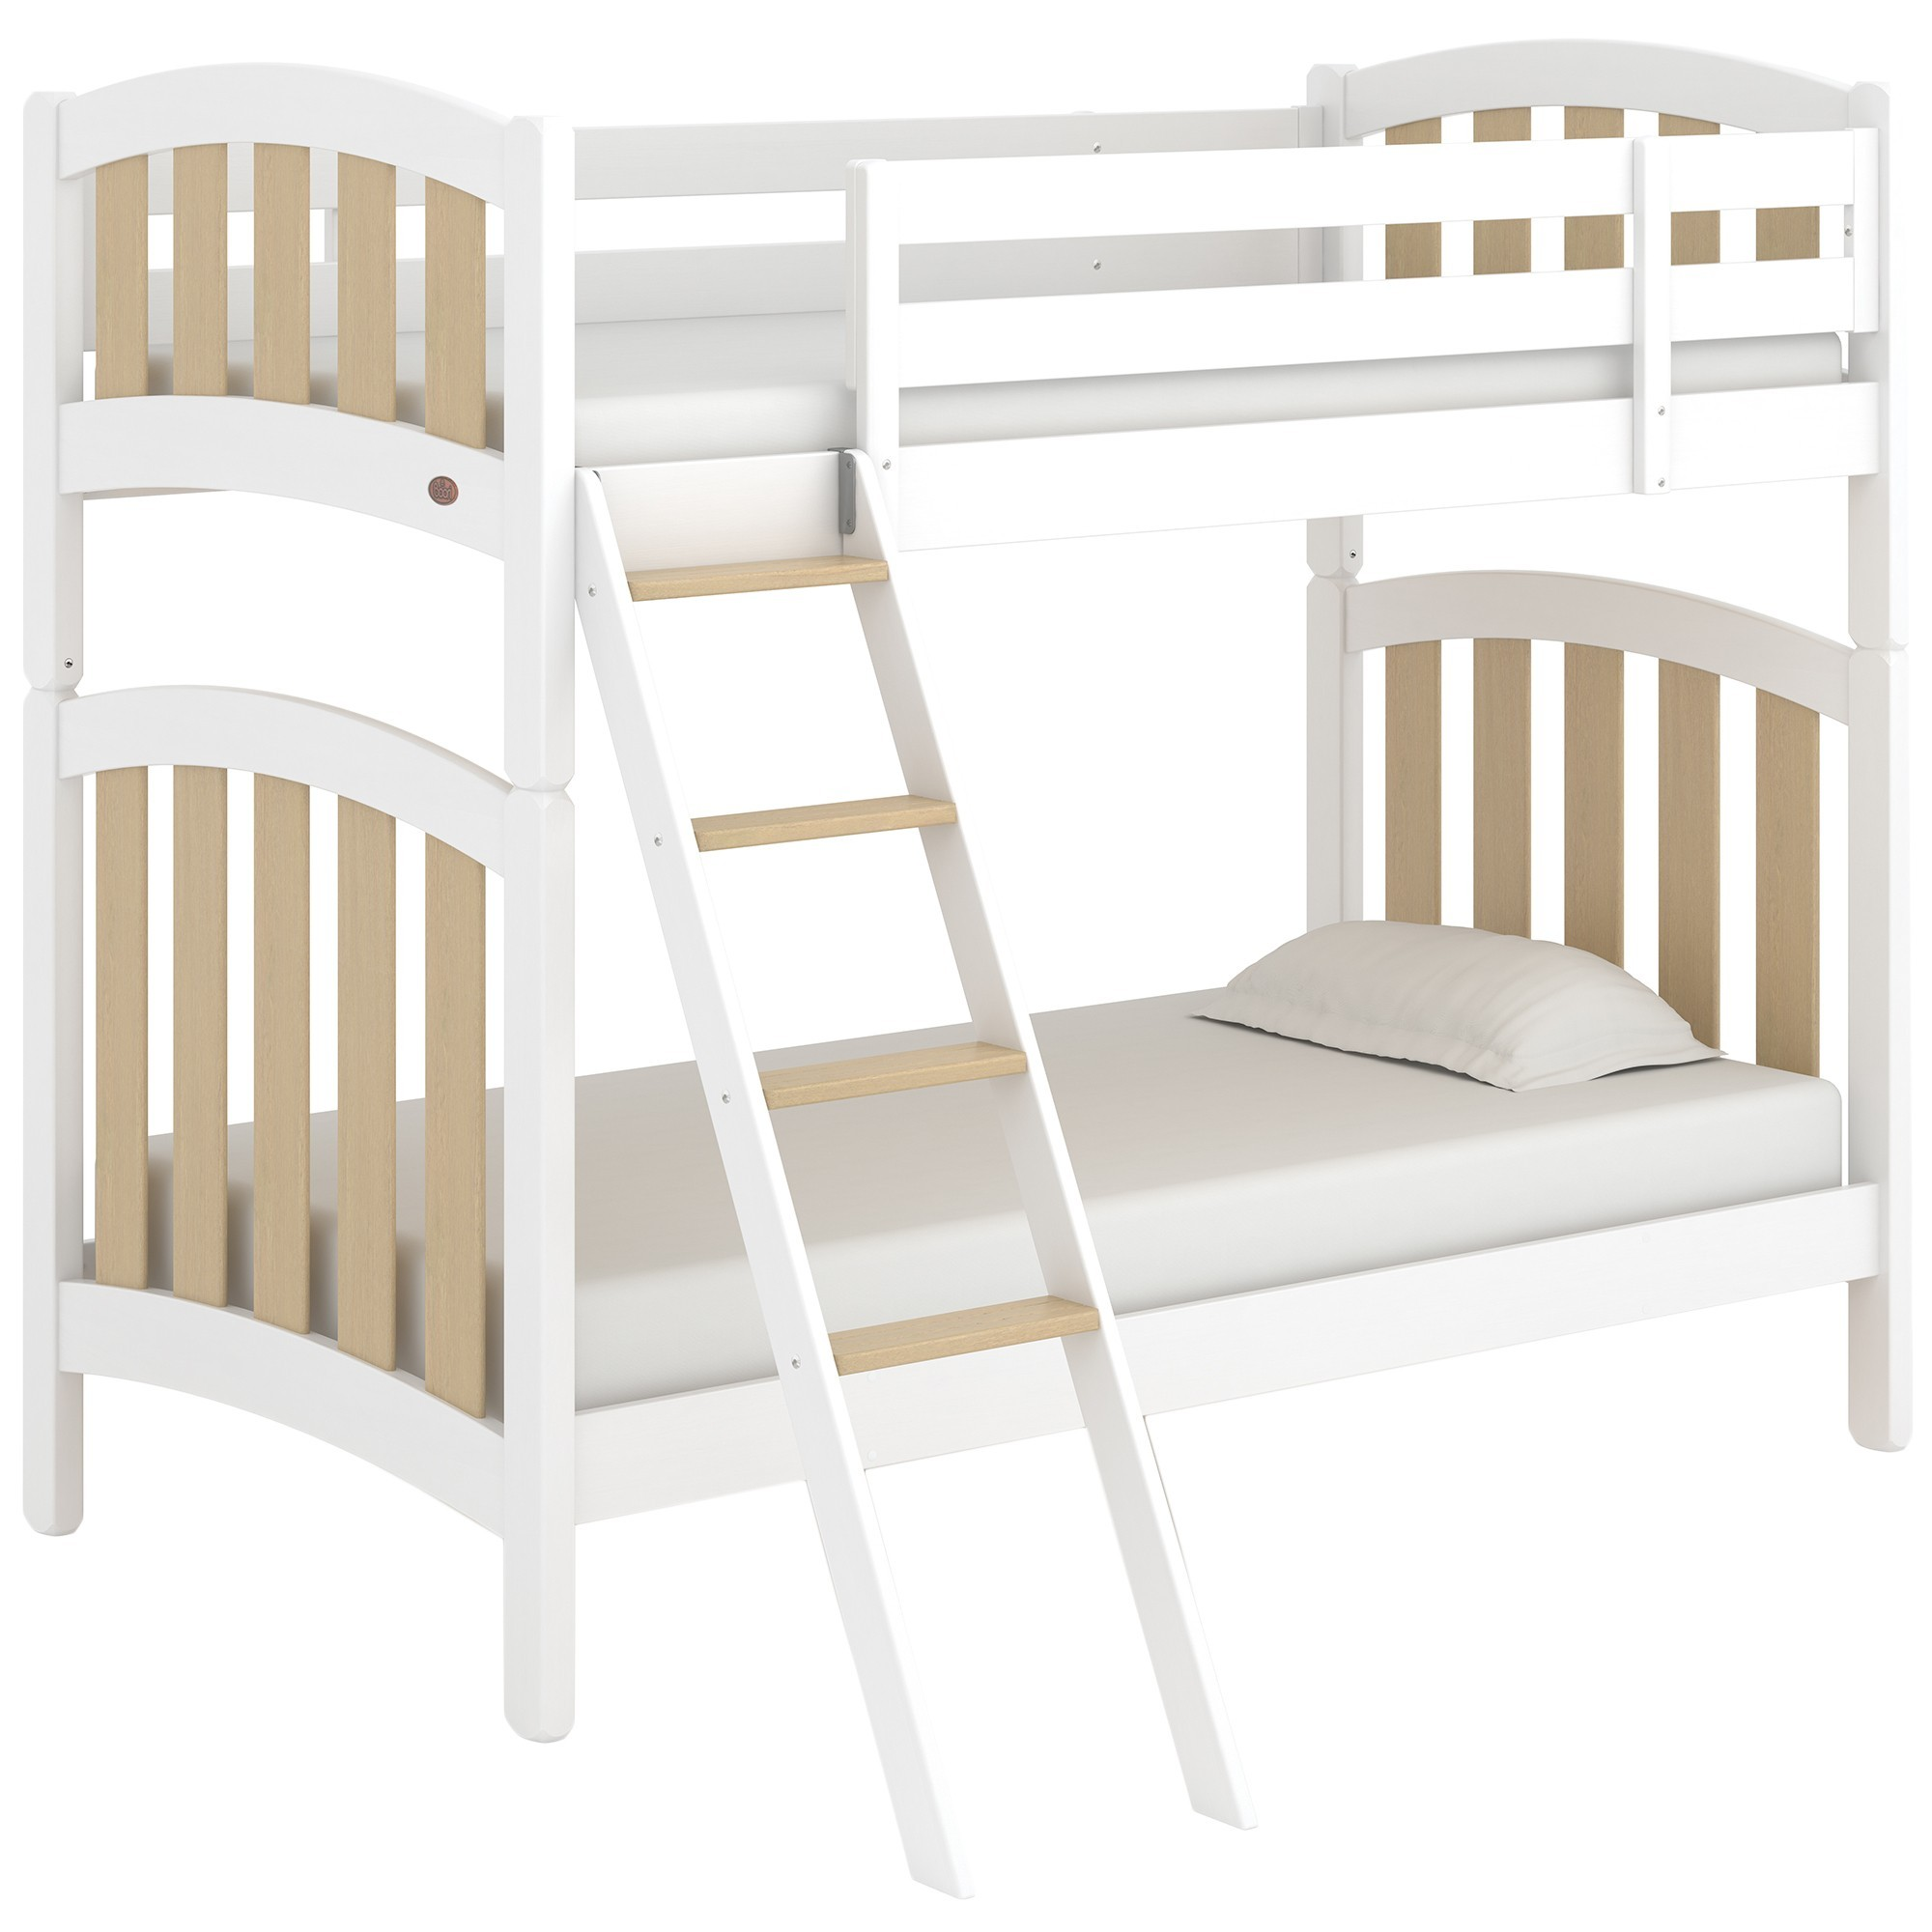 Boori Milano Wooden Bunk Bed, King Single, Barley White / Almond